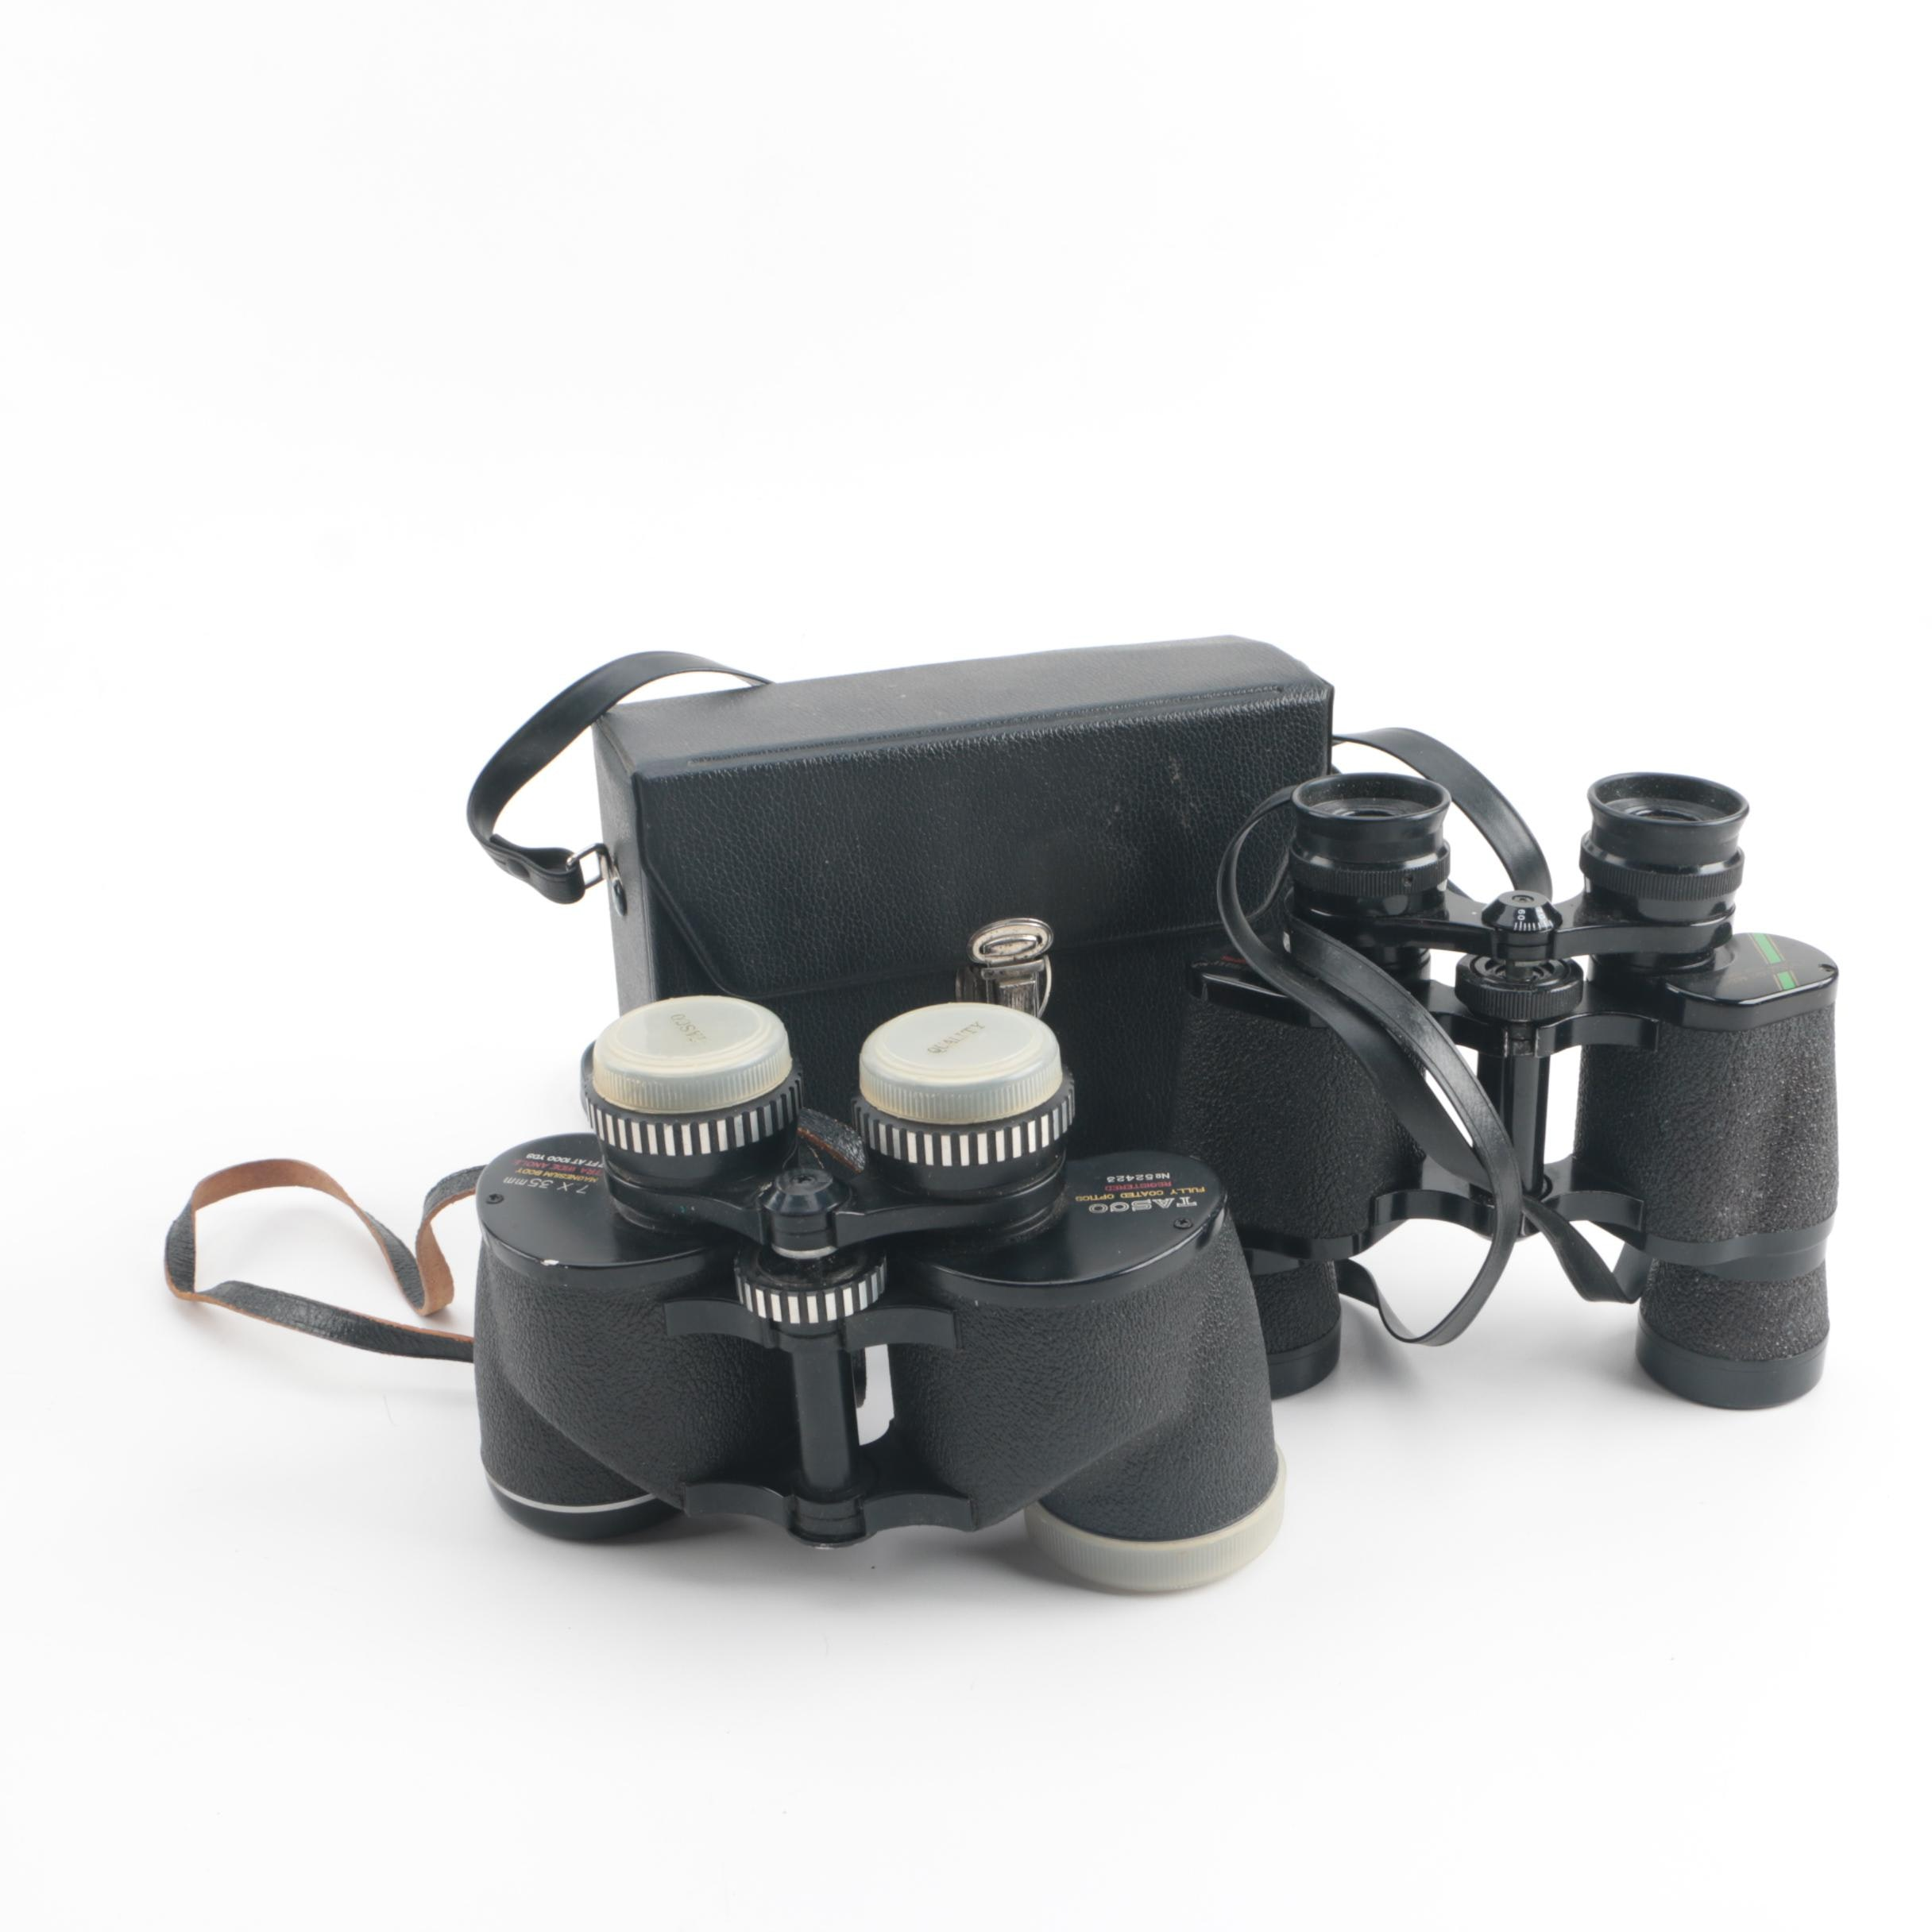 Selsi and Tasco Binoculars with a Case